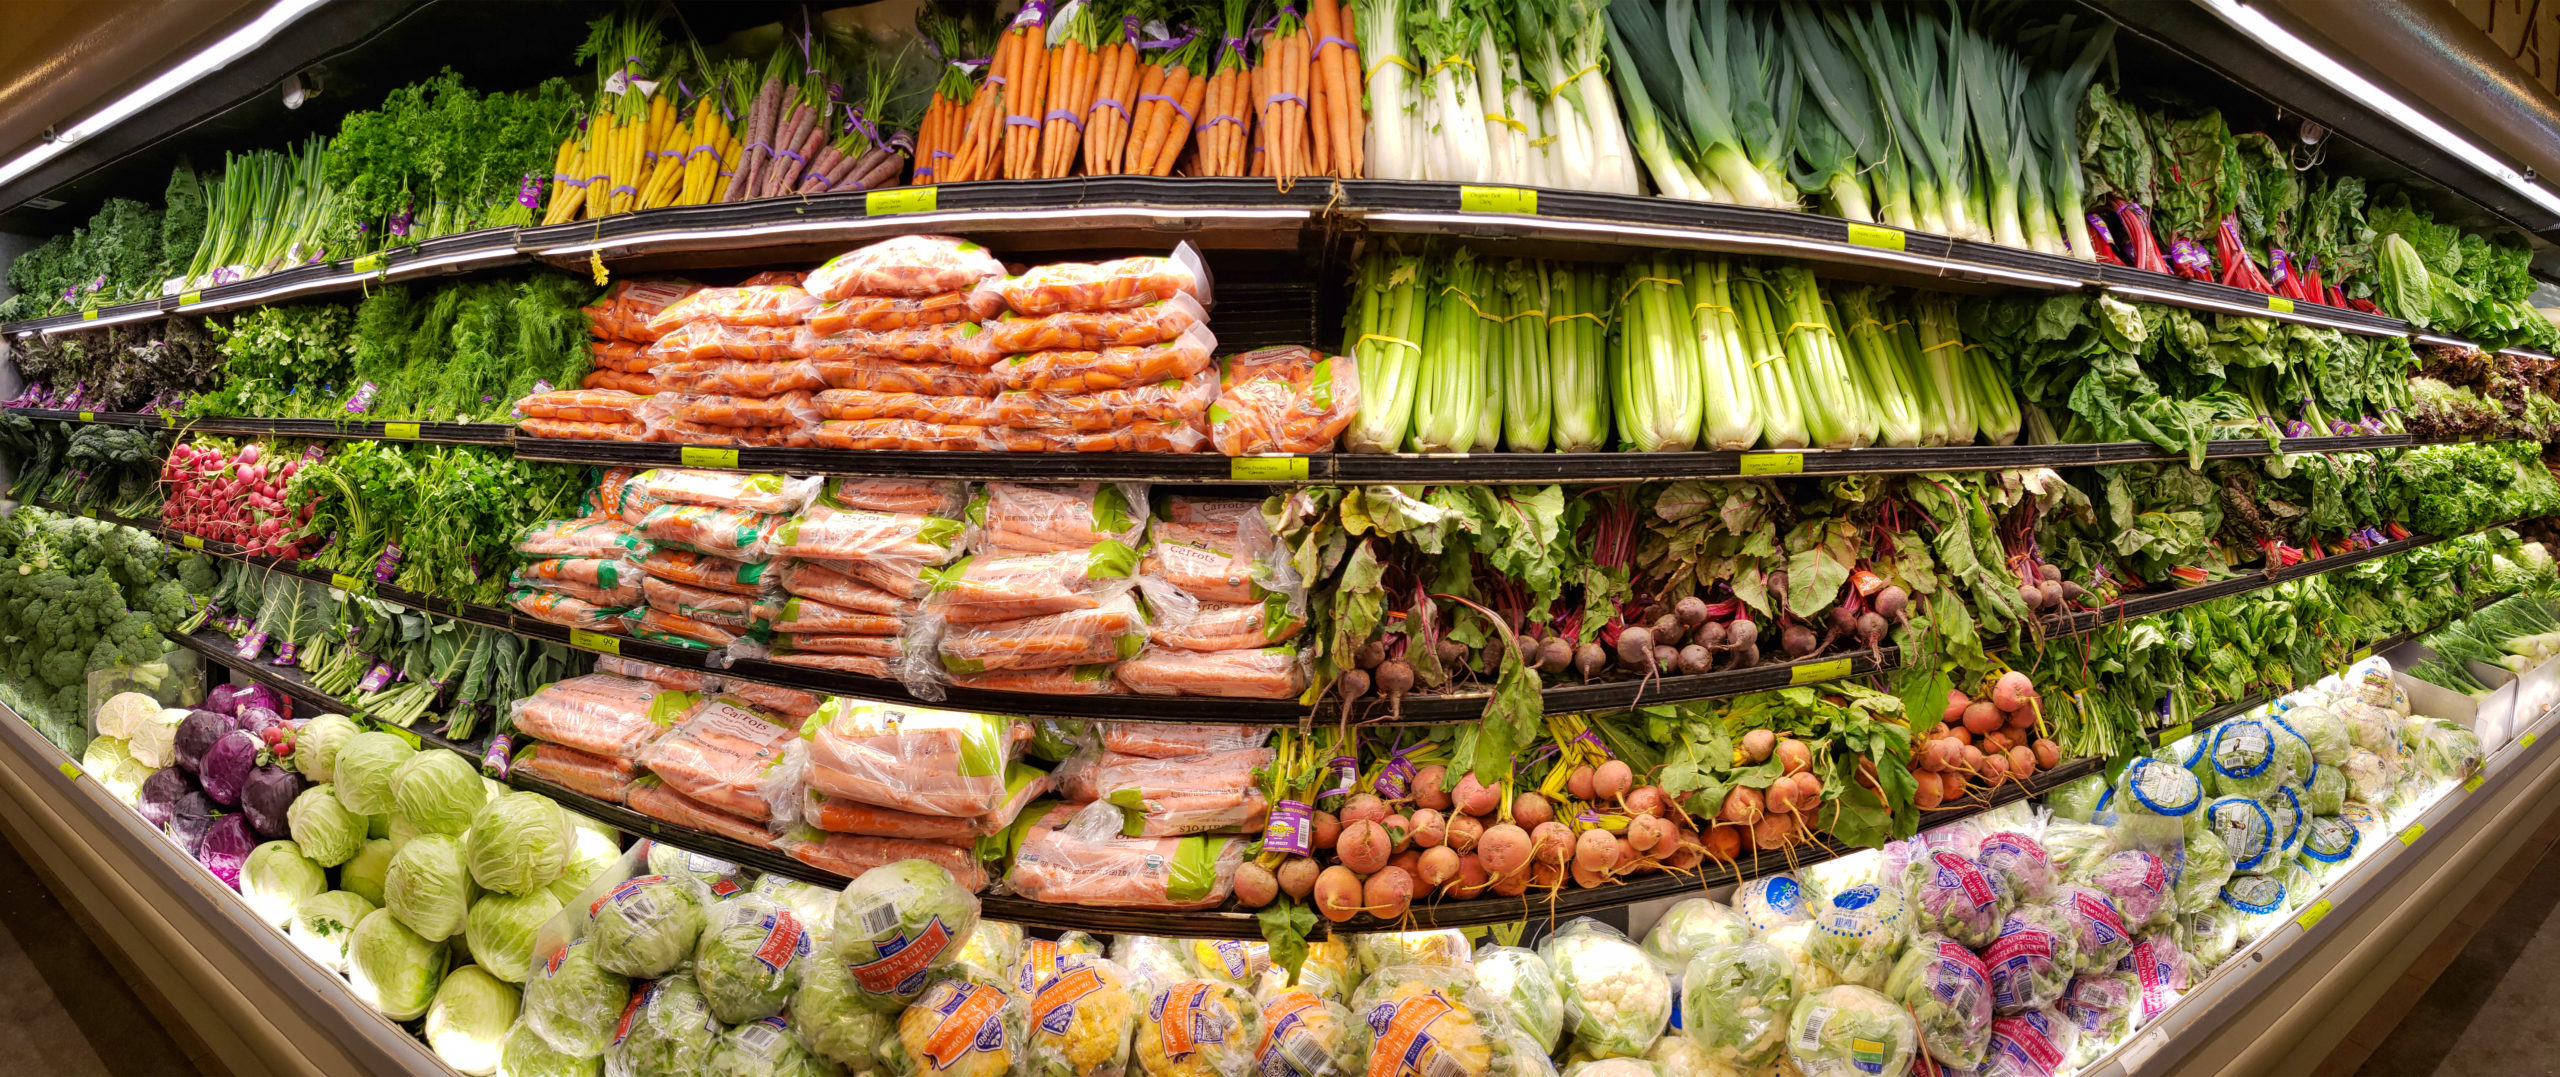 Grocery Cold Storage image